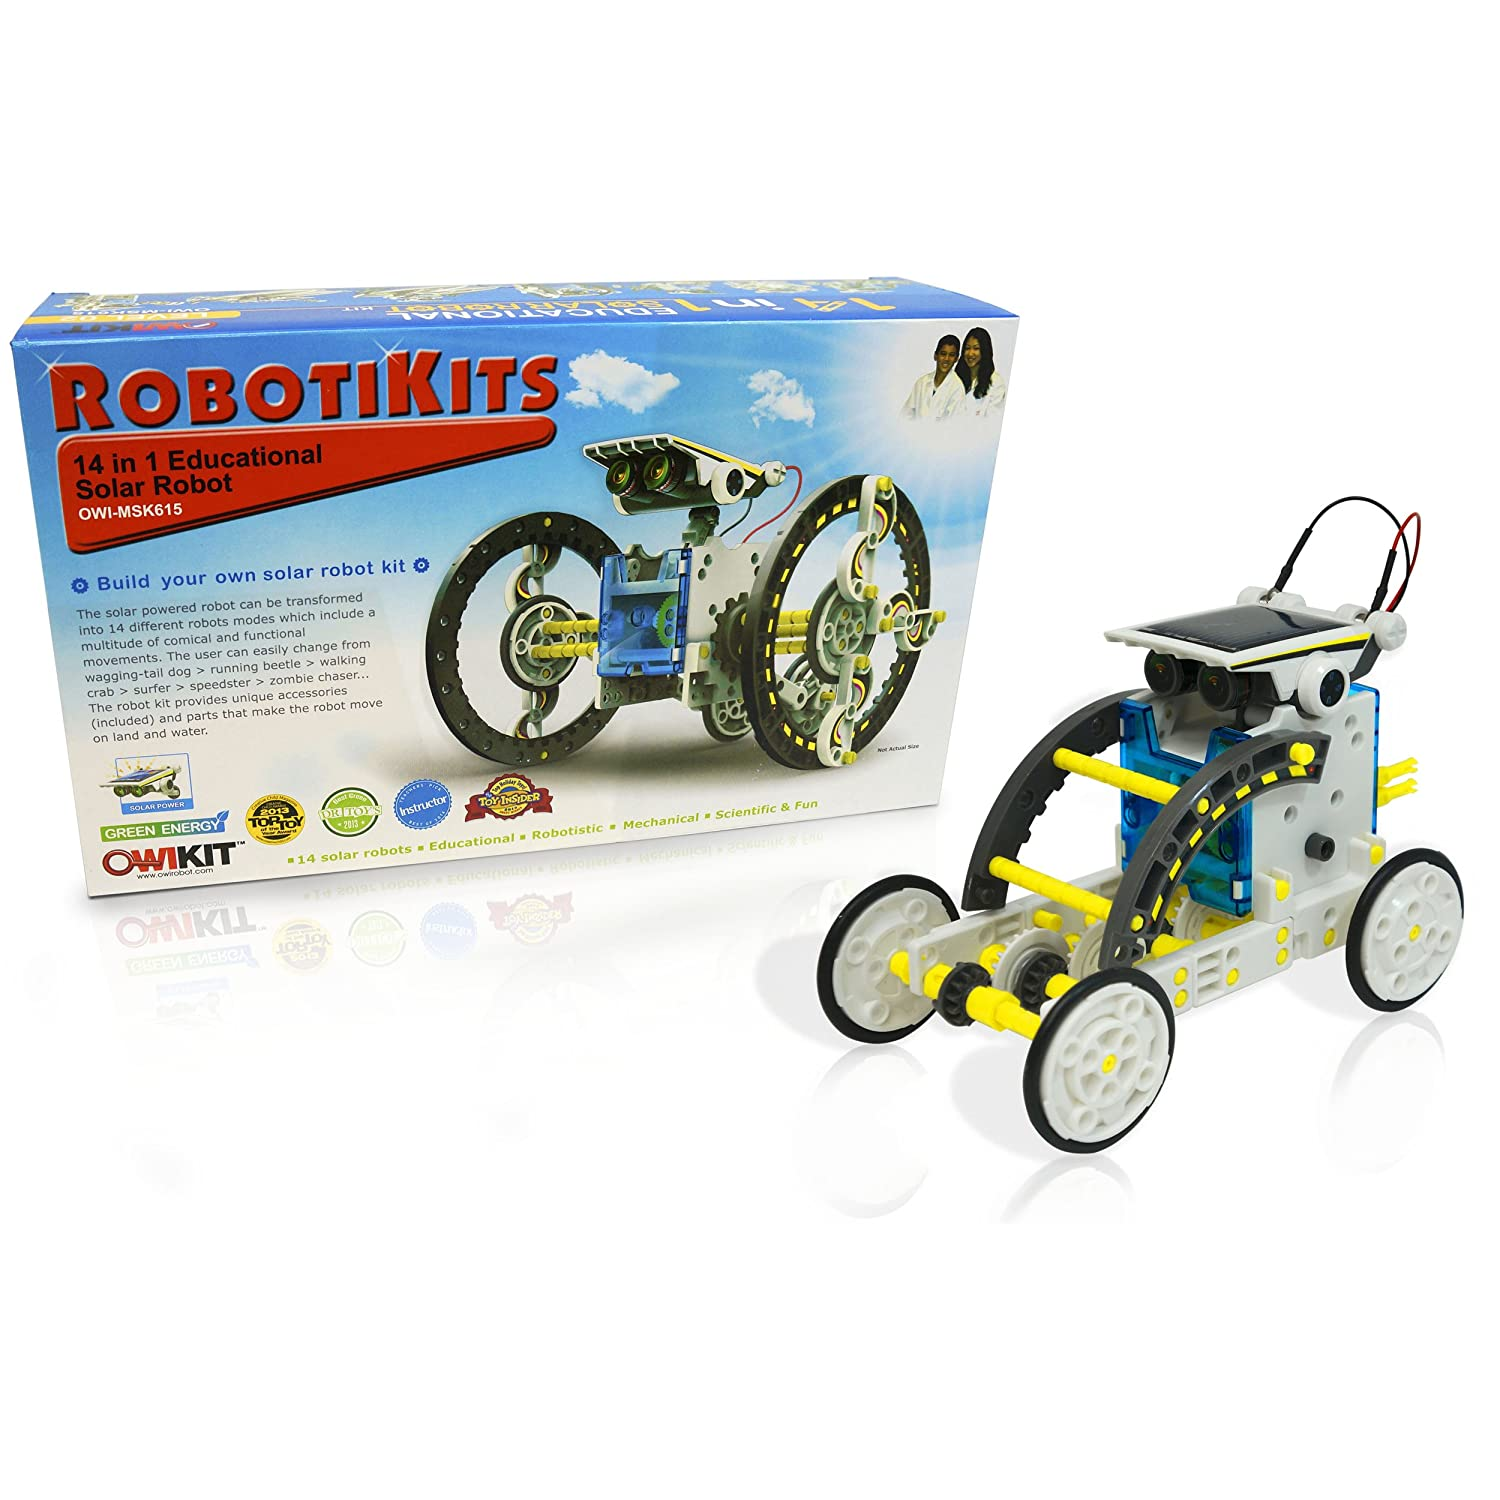 14-in-1 Solar Robot Interactive Toy